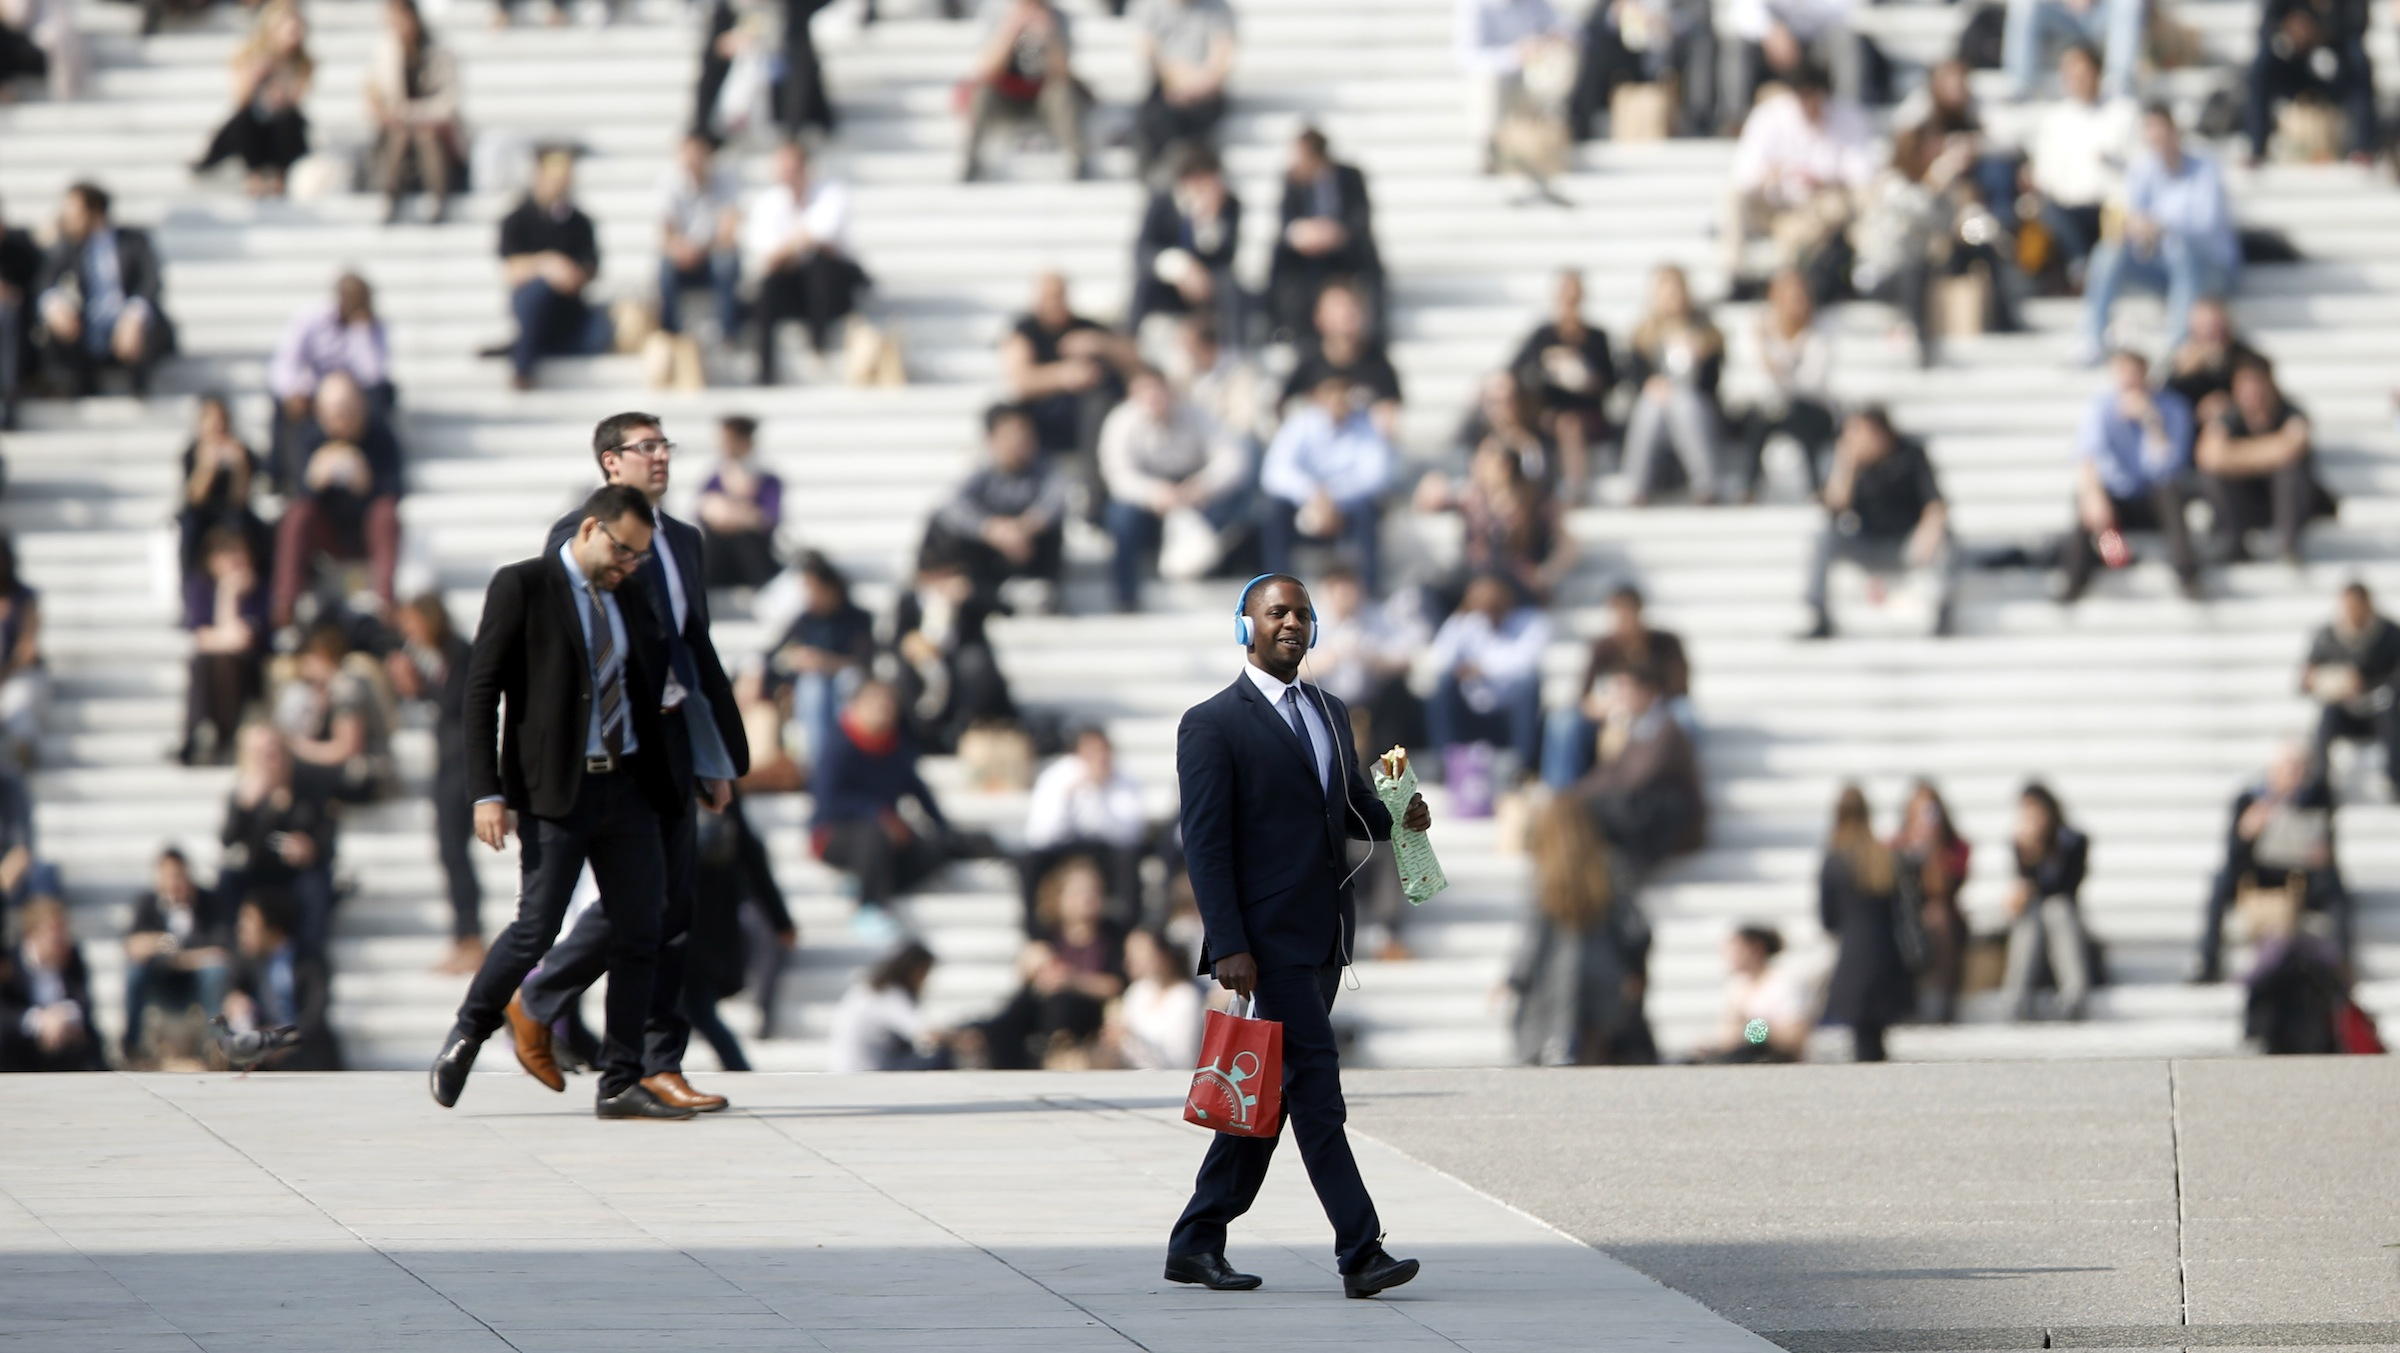 Businessmen enjoy the good weather at lunch time under the Arche de la Defense, in the financial and business district west of Paris, as warm and sunny weather continues in France, March 13, 2014. Residents and visitors to Paris basking in a streak of unseasonable sunshine were also being treated with a dangerous dose of particles from car fumes that pushed air pollution to levels above other northern European capitals this week. Swathes of France, including the French capital, were on maximum alert over air pollution on Thursday, prompting Paris authorities to make green transportation such as its Velib bike-share and the Autolib electric car fleet free for the day. REUTERS/Charles Platiau (FRANCE - Tags: BUSINESS ENVIRONMENT SOCIETY TPX IMAGES OF THE DAY) - RTR3GYRI